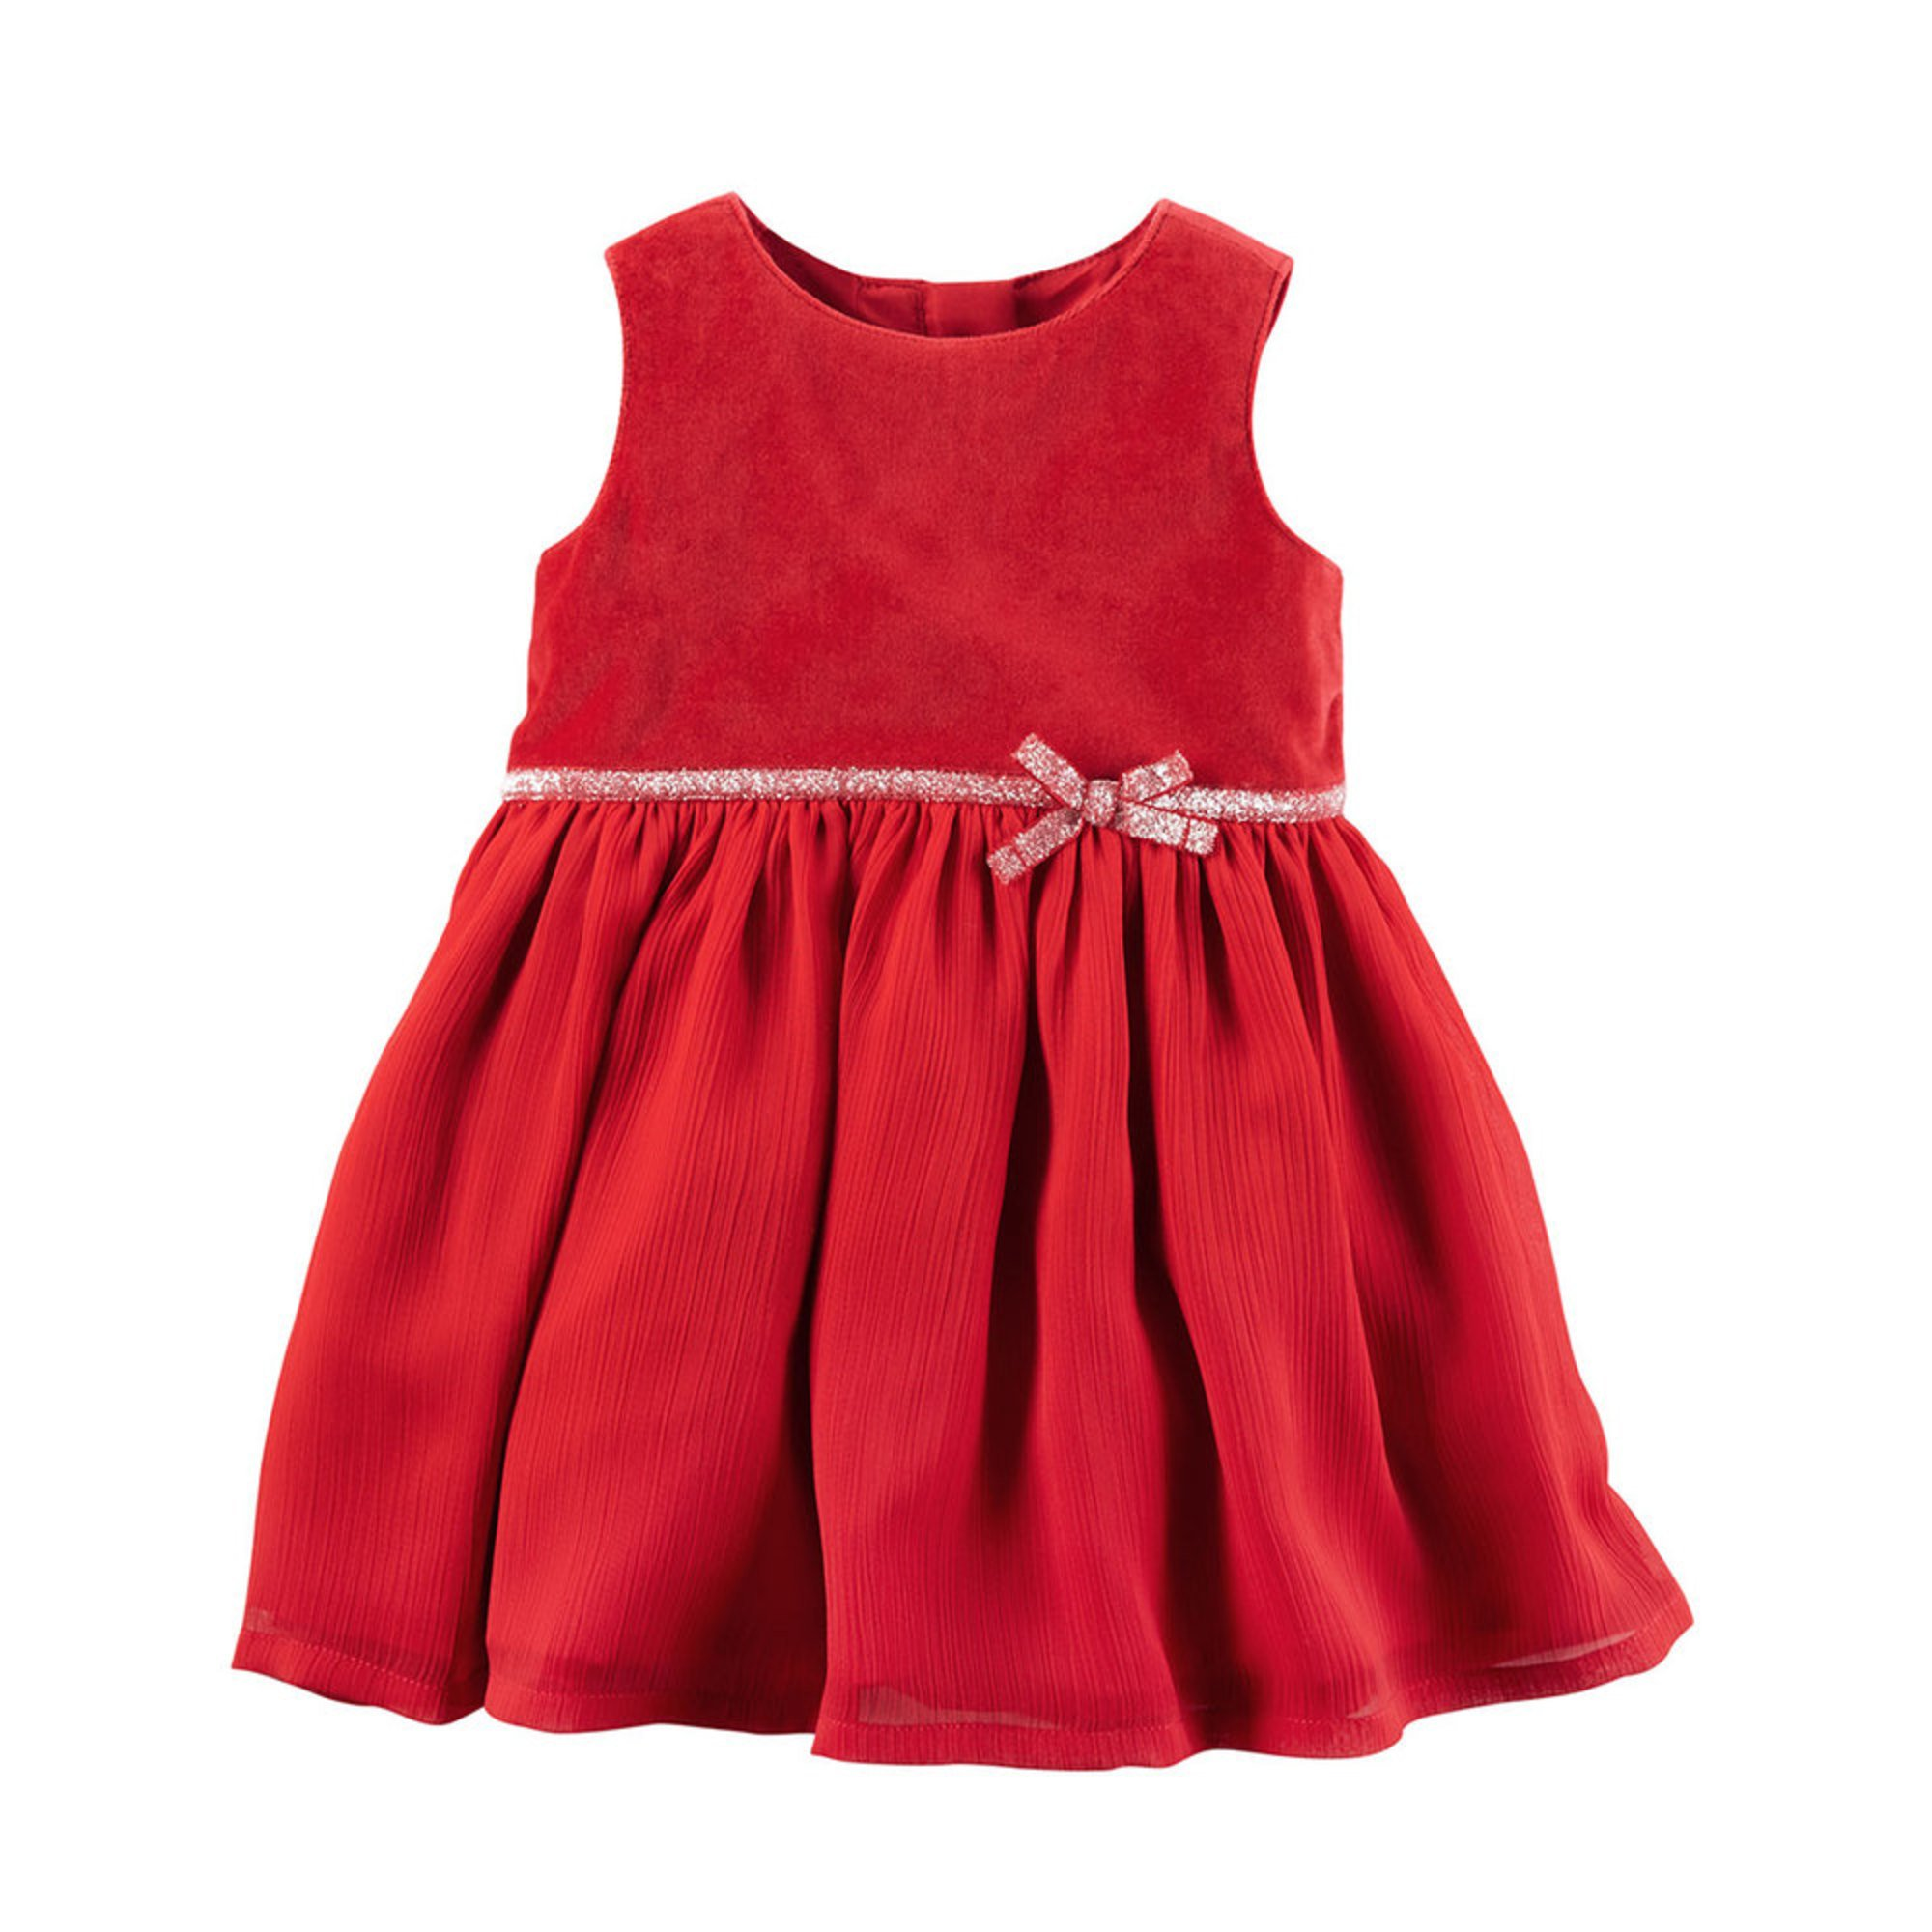 Carters Christmas Dress hd photo